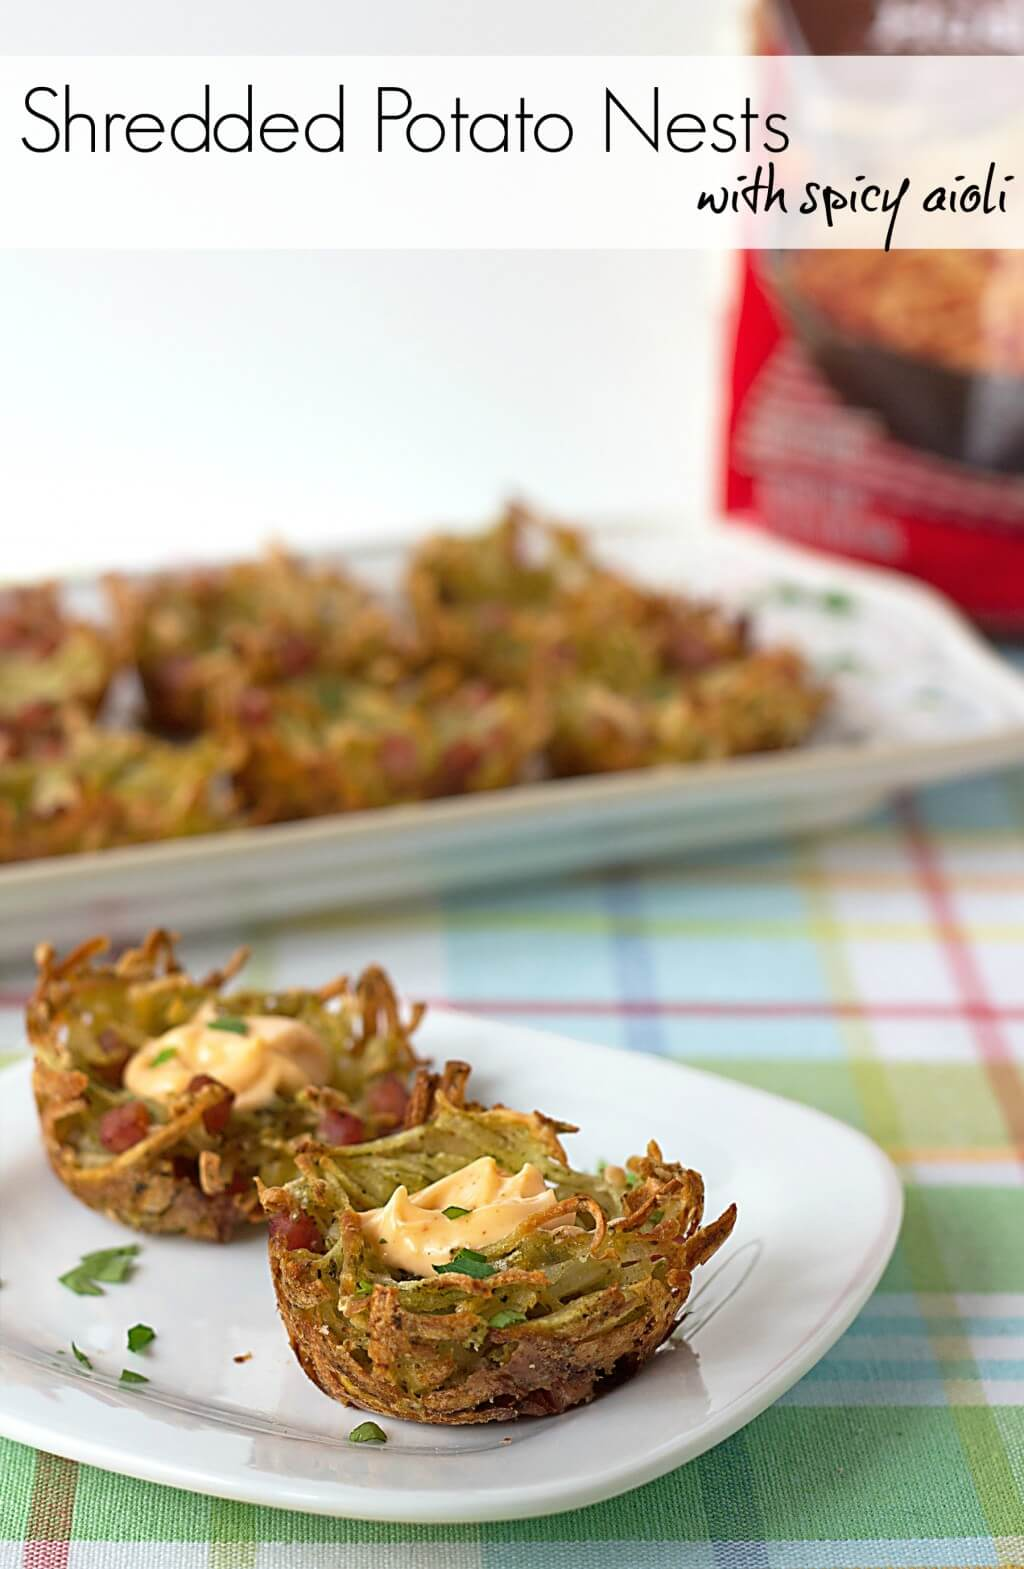 titled image (and shown): Shredded Potato Nests with Spicy Aioli